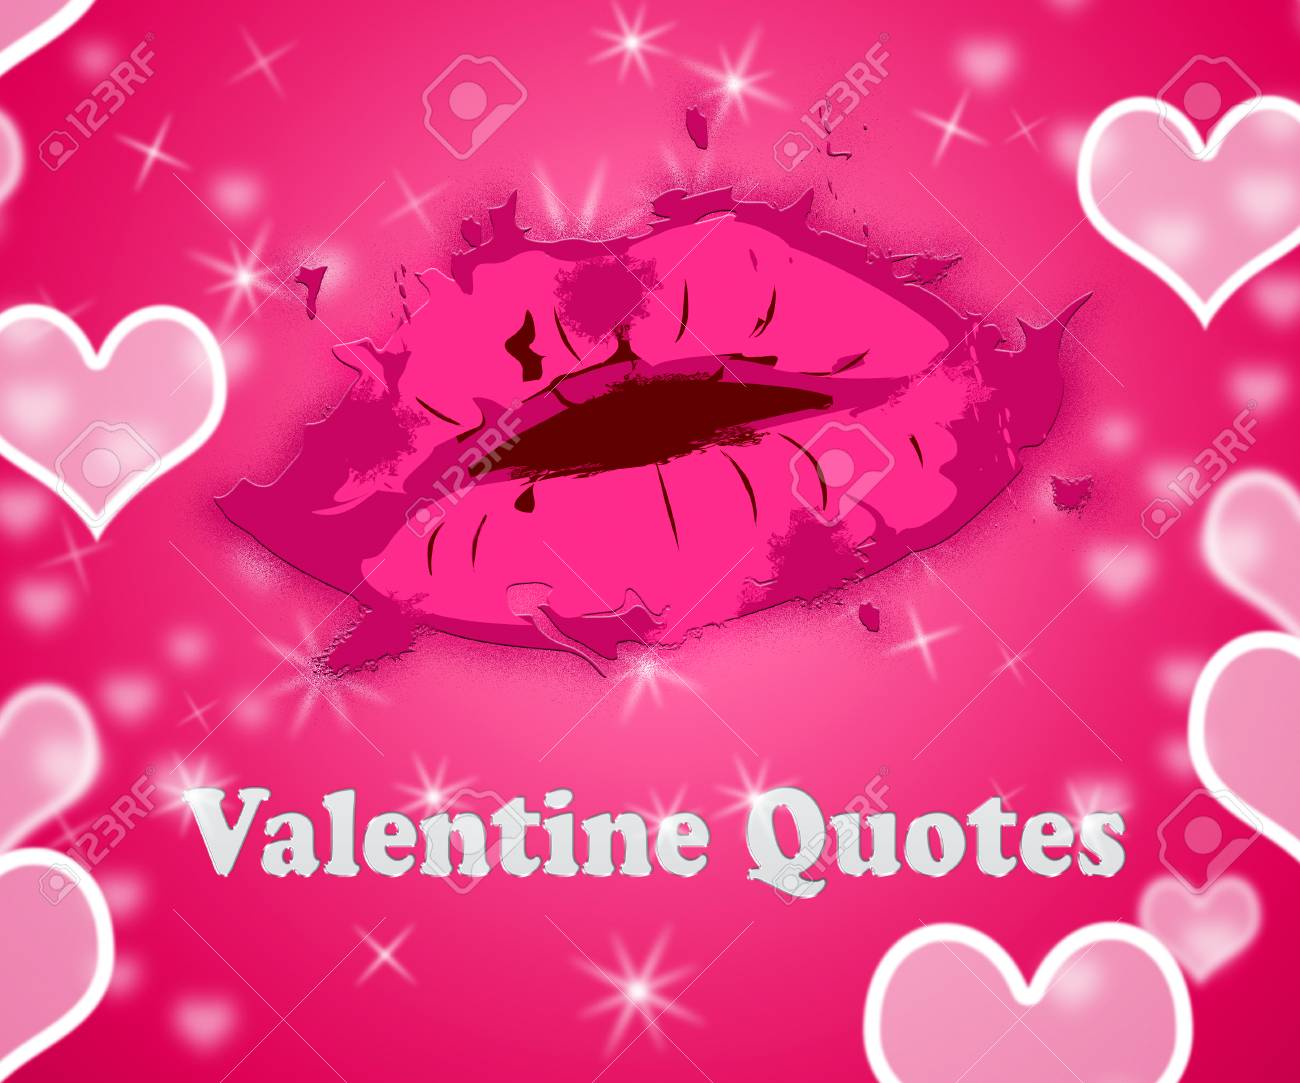 Valentine Quotes Lips Shows Romantic Valentines Day Quotations